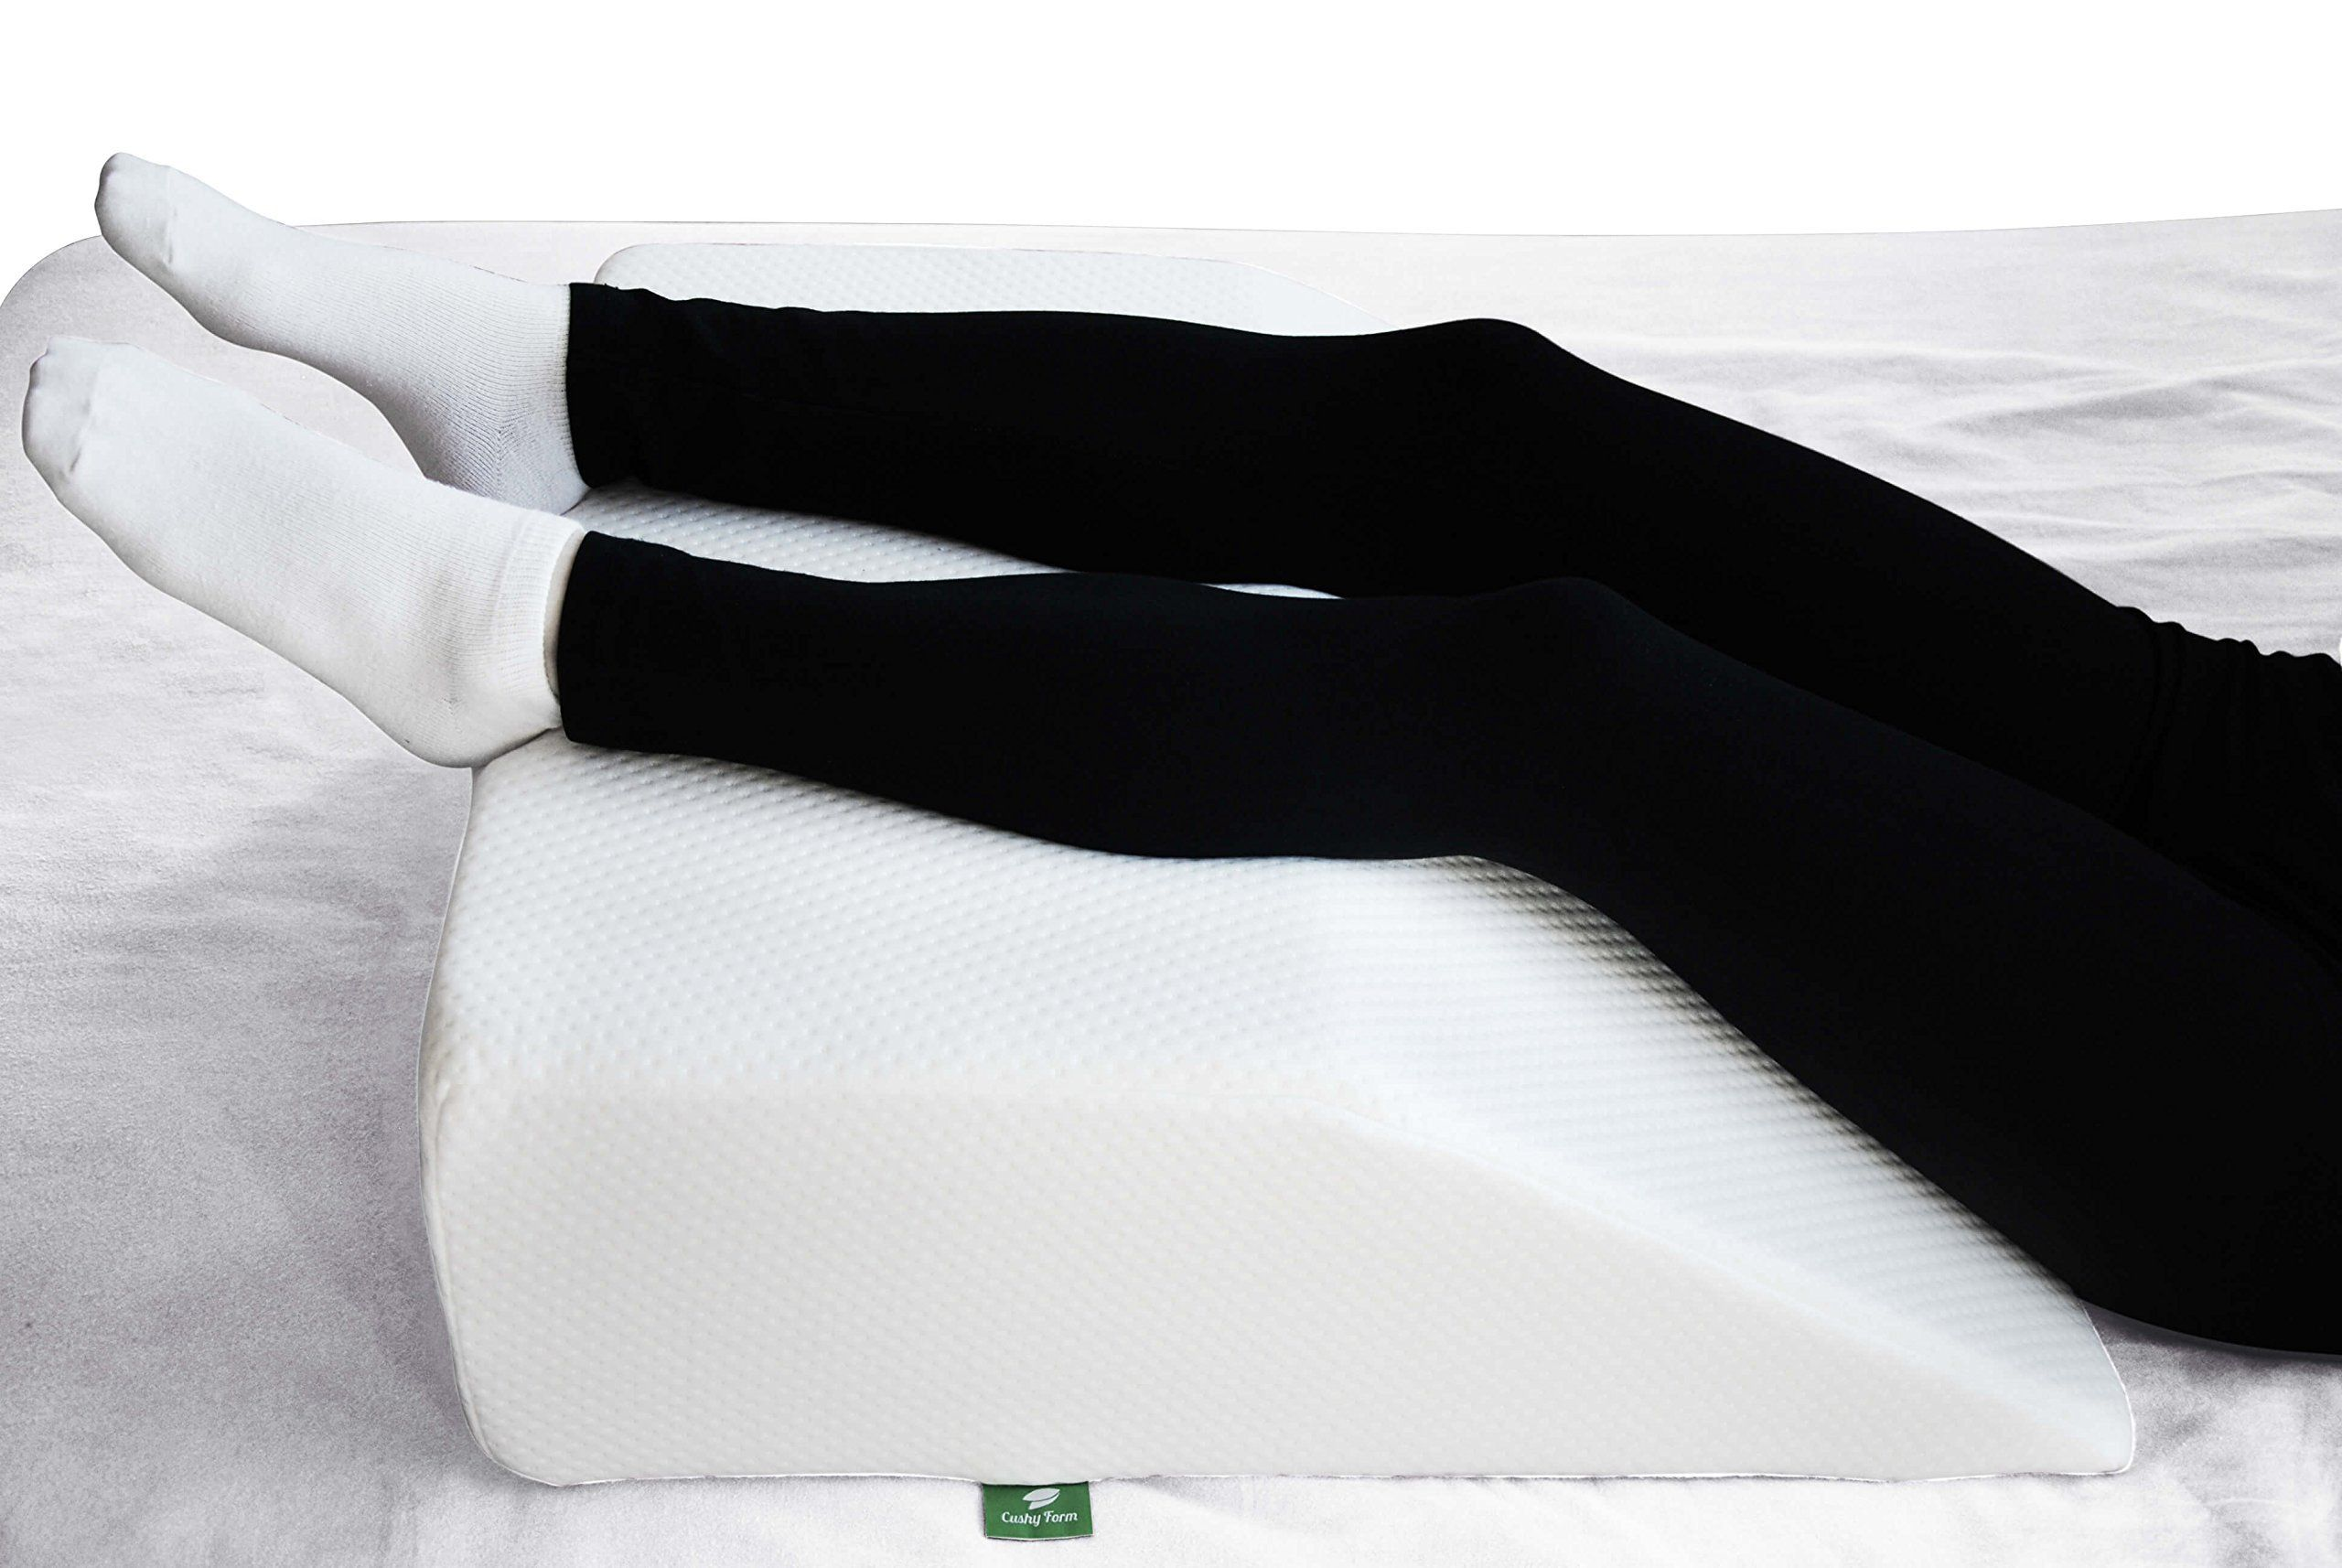 Legs wearing black leggings and white socks resting on a leg rest pillow